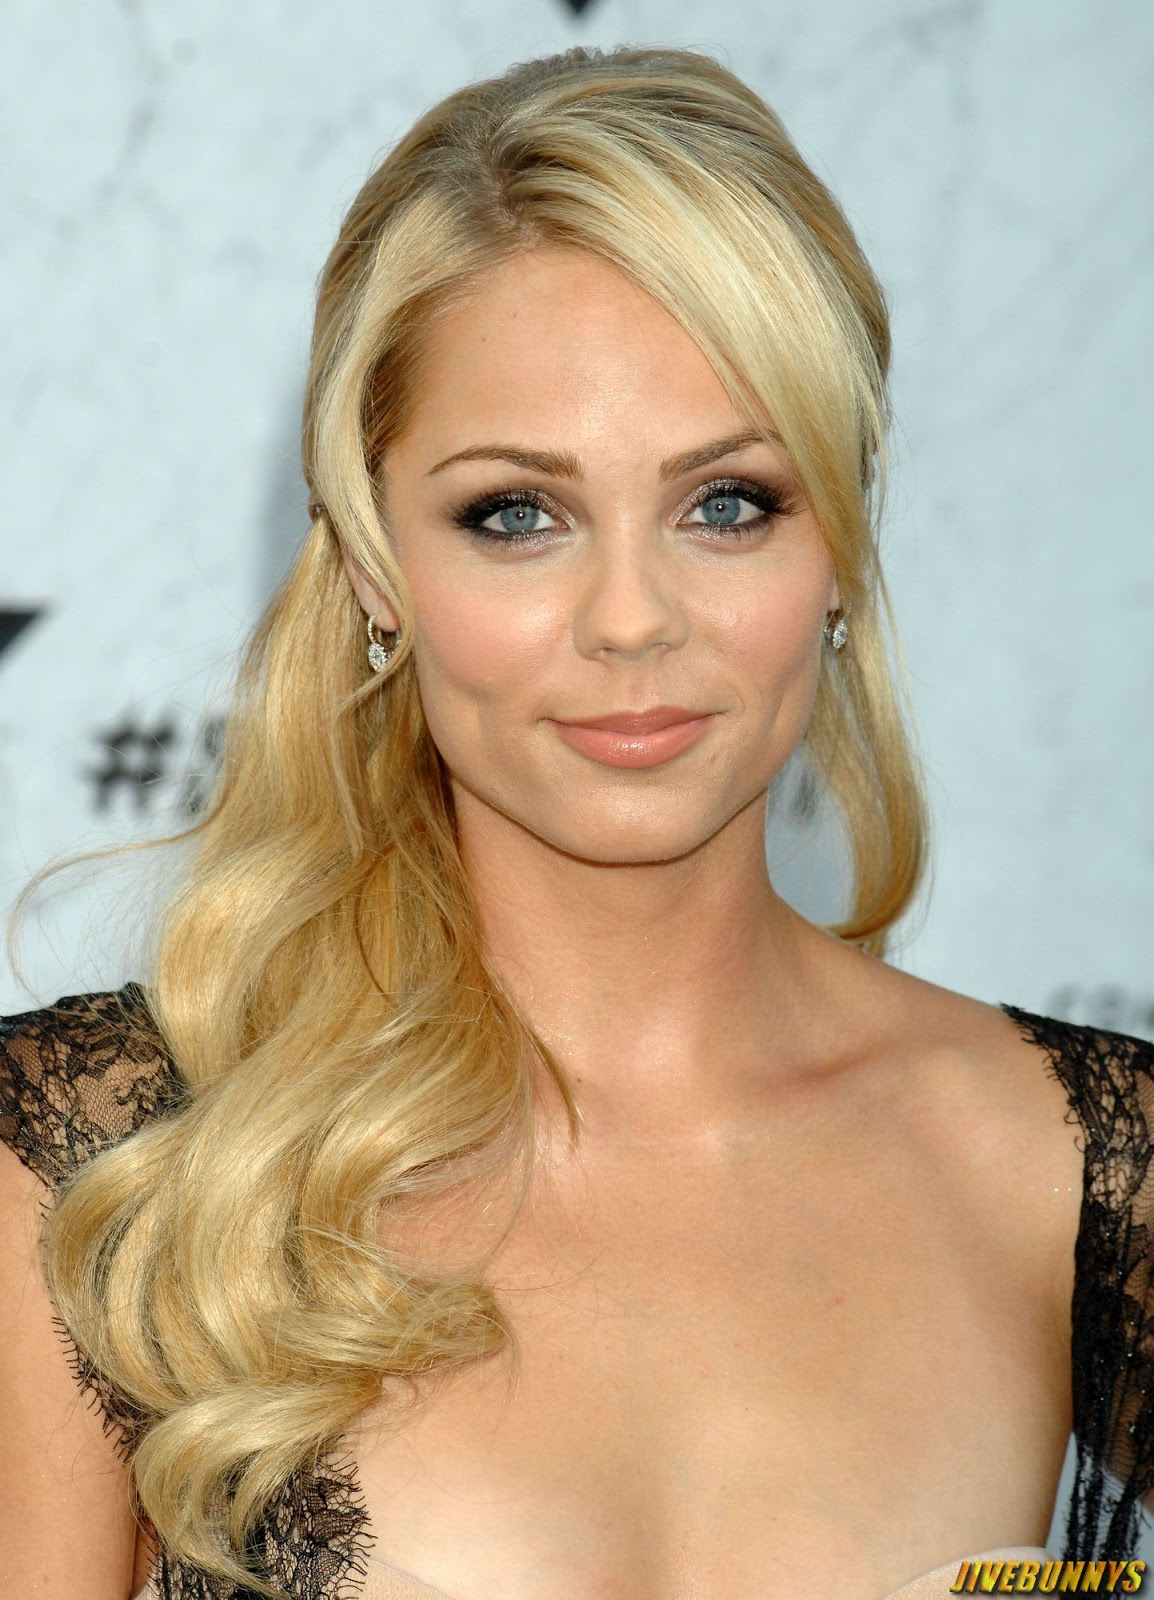 Laura vandervoort sexy blonde actress photos and image gallery 2 - Laura nue ...